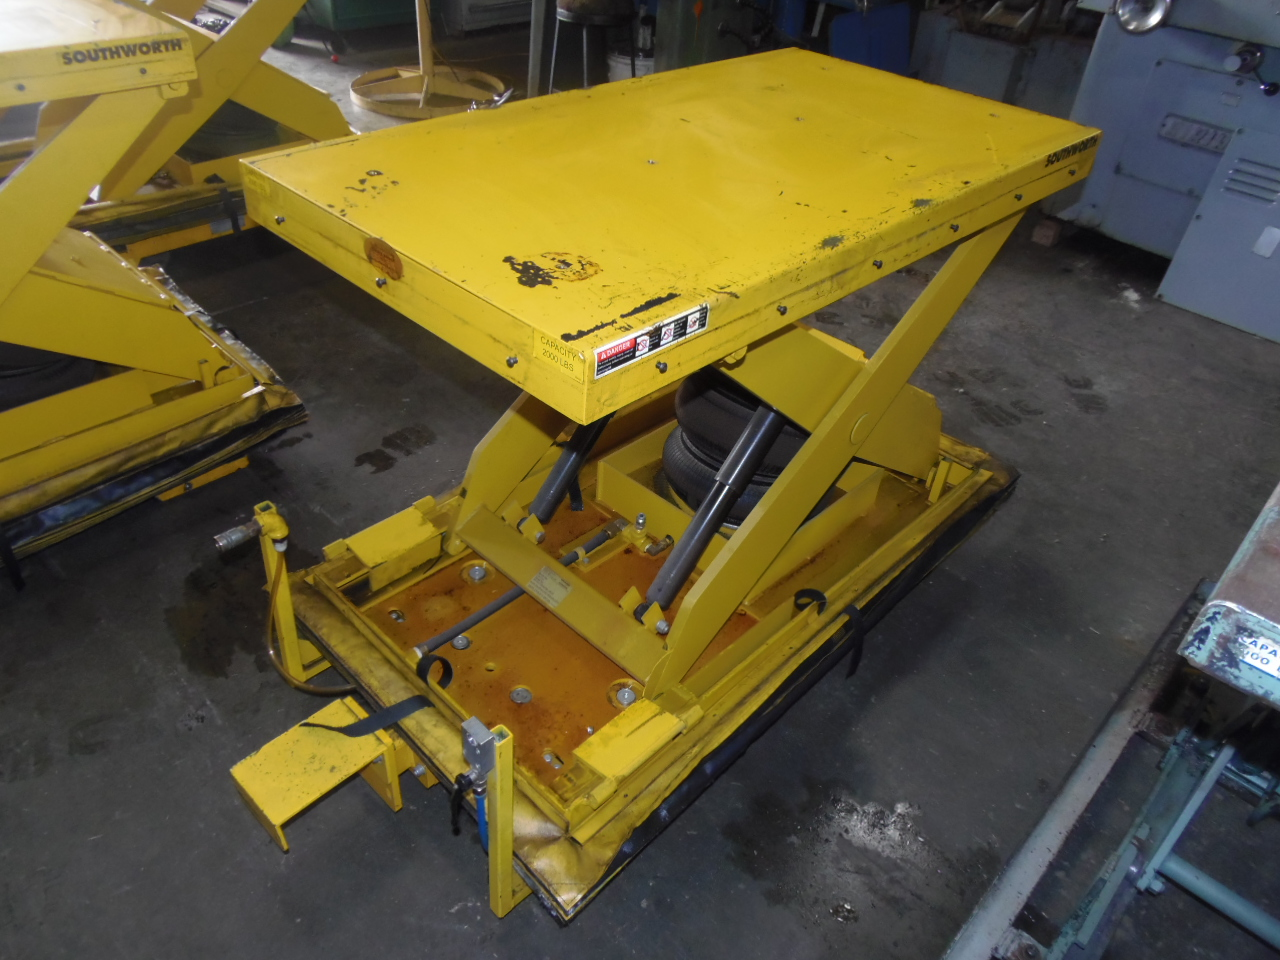 2000 LB. SOUTHWORTH AIR LIFT TABLE, MODEL LSA2-24, PNEUMATIC CROSS TRAVEL, 26 x 48 INCH TABLE, 80 PSI, WHEELS